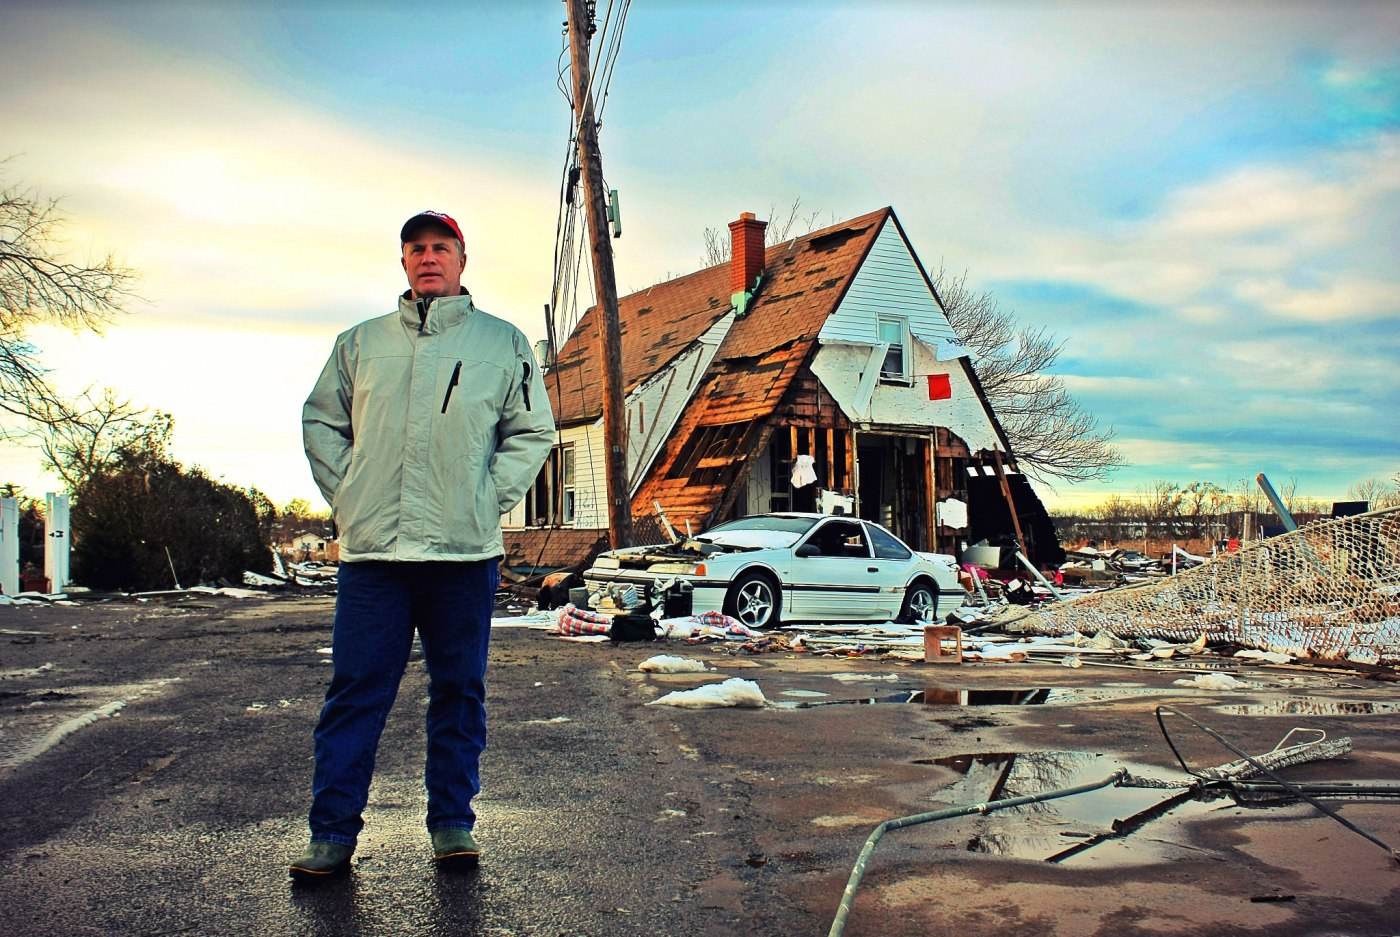 """November 8th, 2012: """"Hi, I'm Pastor Joseph, and this used to be my house."""" Pictured in the background is the top level of what used to be his house on Kissam Ave in Staten Island. The foundation of his house was behind me as I was taking this photo."""